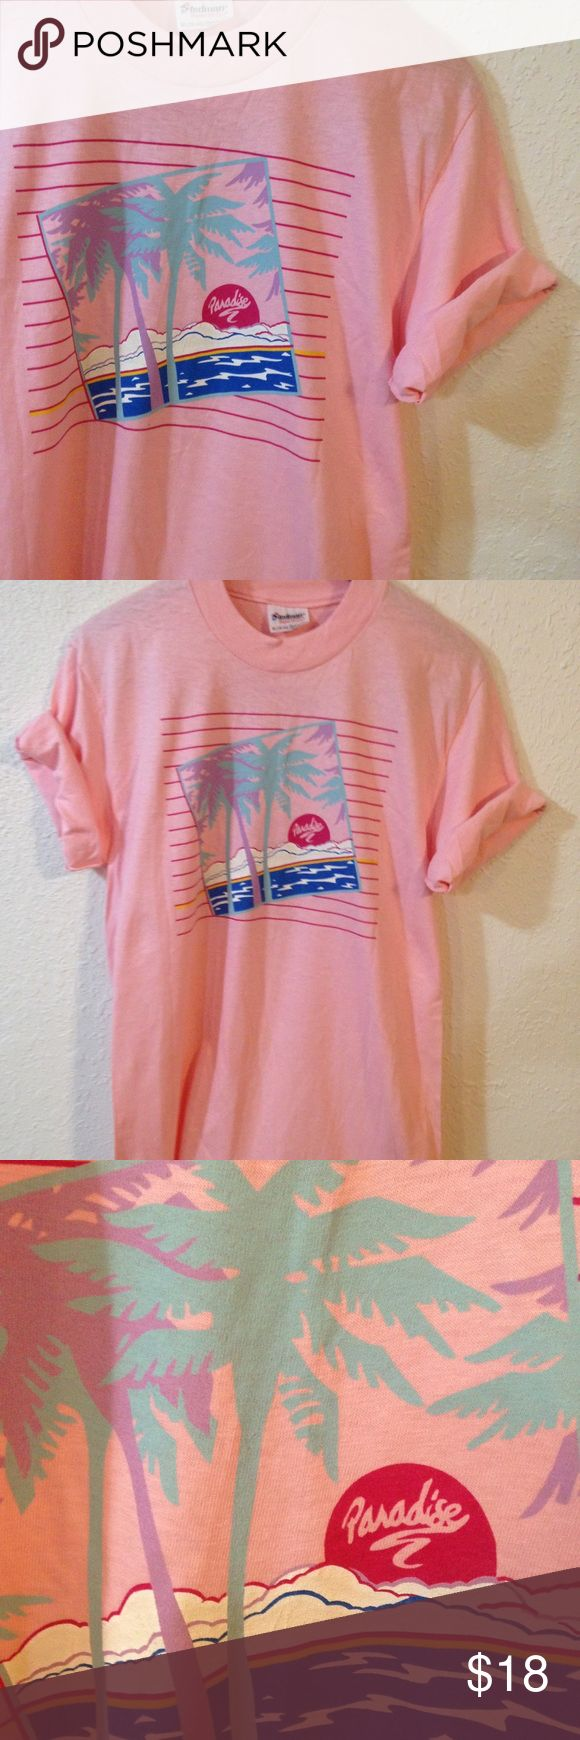 "Vintage pastel beach t-shirt pink ocean t-shirt Sweet vintage beachy shirt!  Pastel retro graphic that reads, ""paradise"". Ocean, clouds, palm trees. 100% cotton. Excellent vintage condition!  Oversized t-shirt / throwback / 90s / 1990s / souvenir / truck stop / tourist / vacation / unisex / womens / mens / women's / men's / hipster / grunge / pink / purple / blue / tee / vtg Vintage Tops Tees - Short Sleeve"